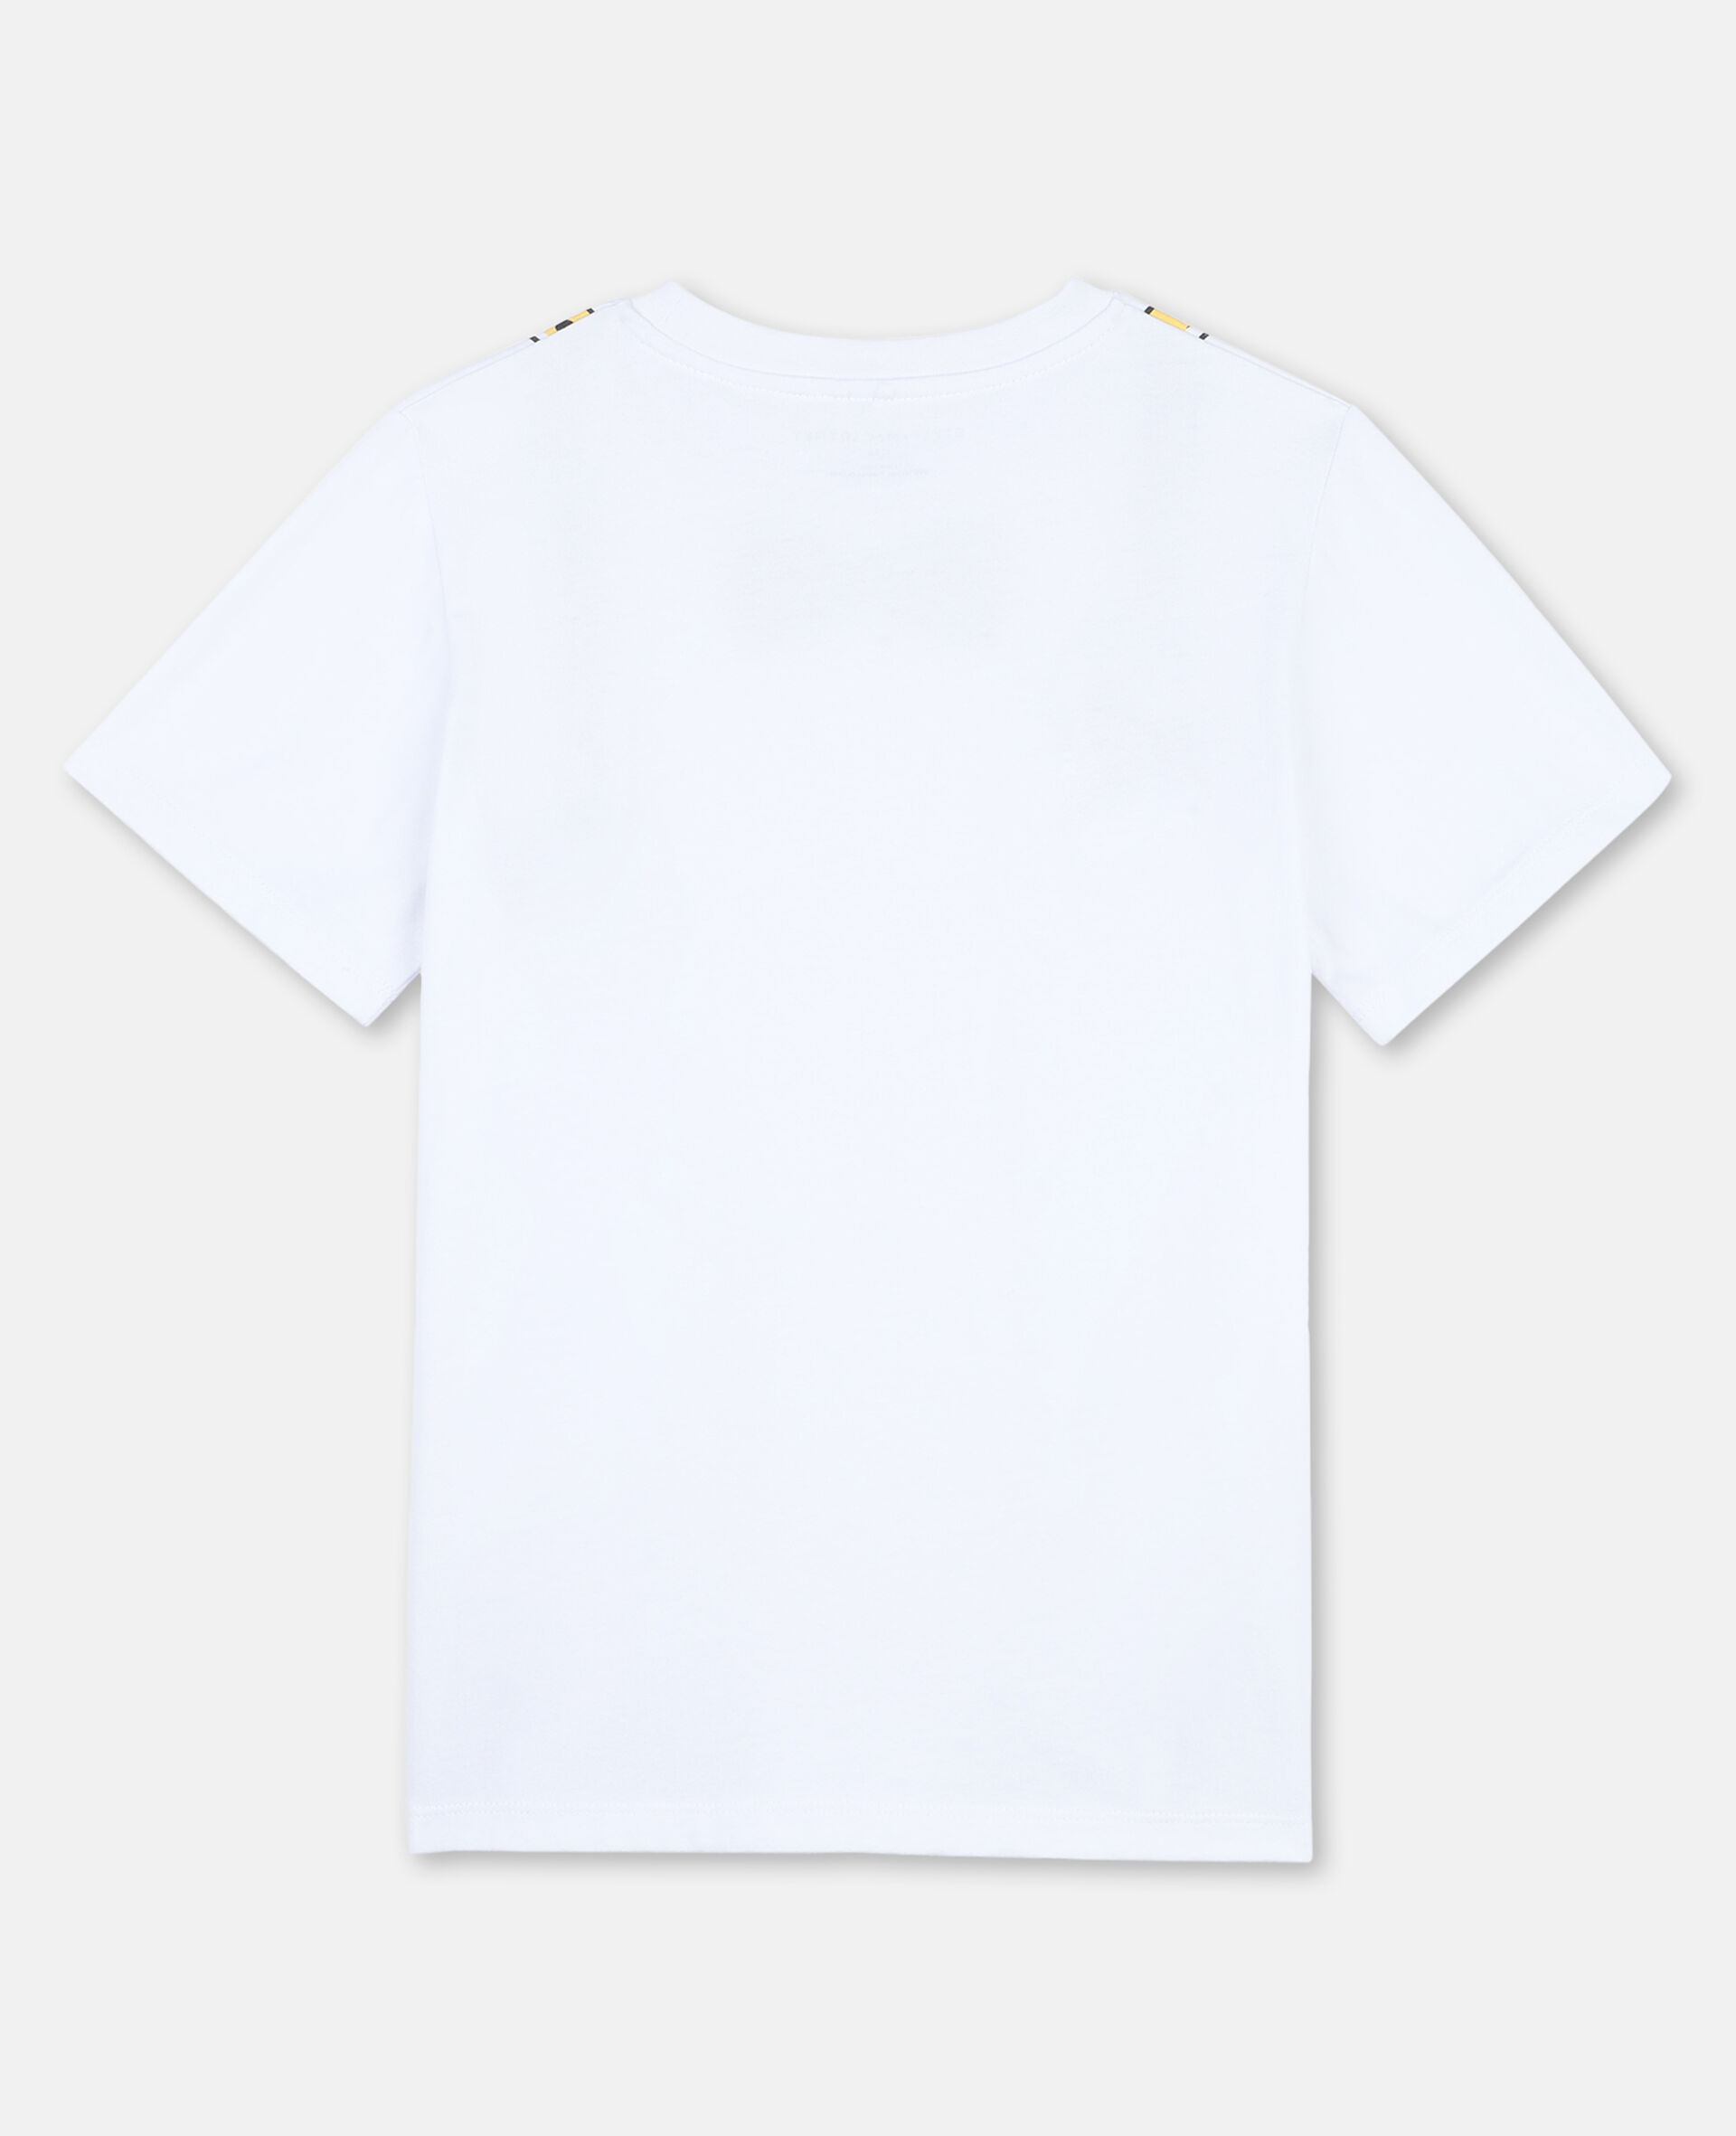 Suspenders Cotton T-shirt -White-large image number 3